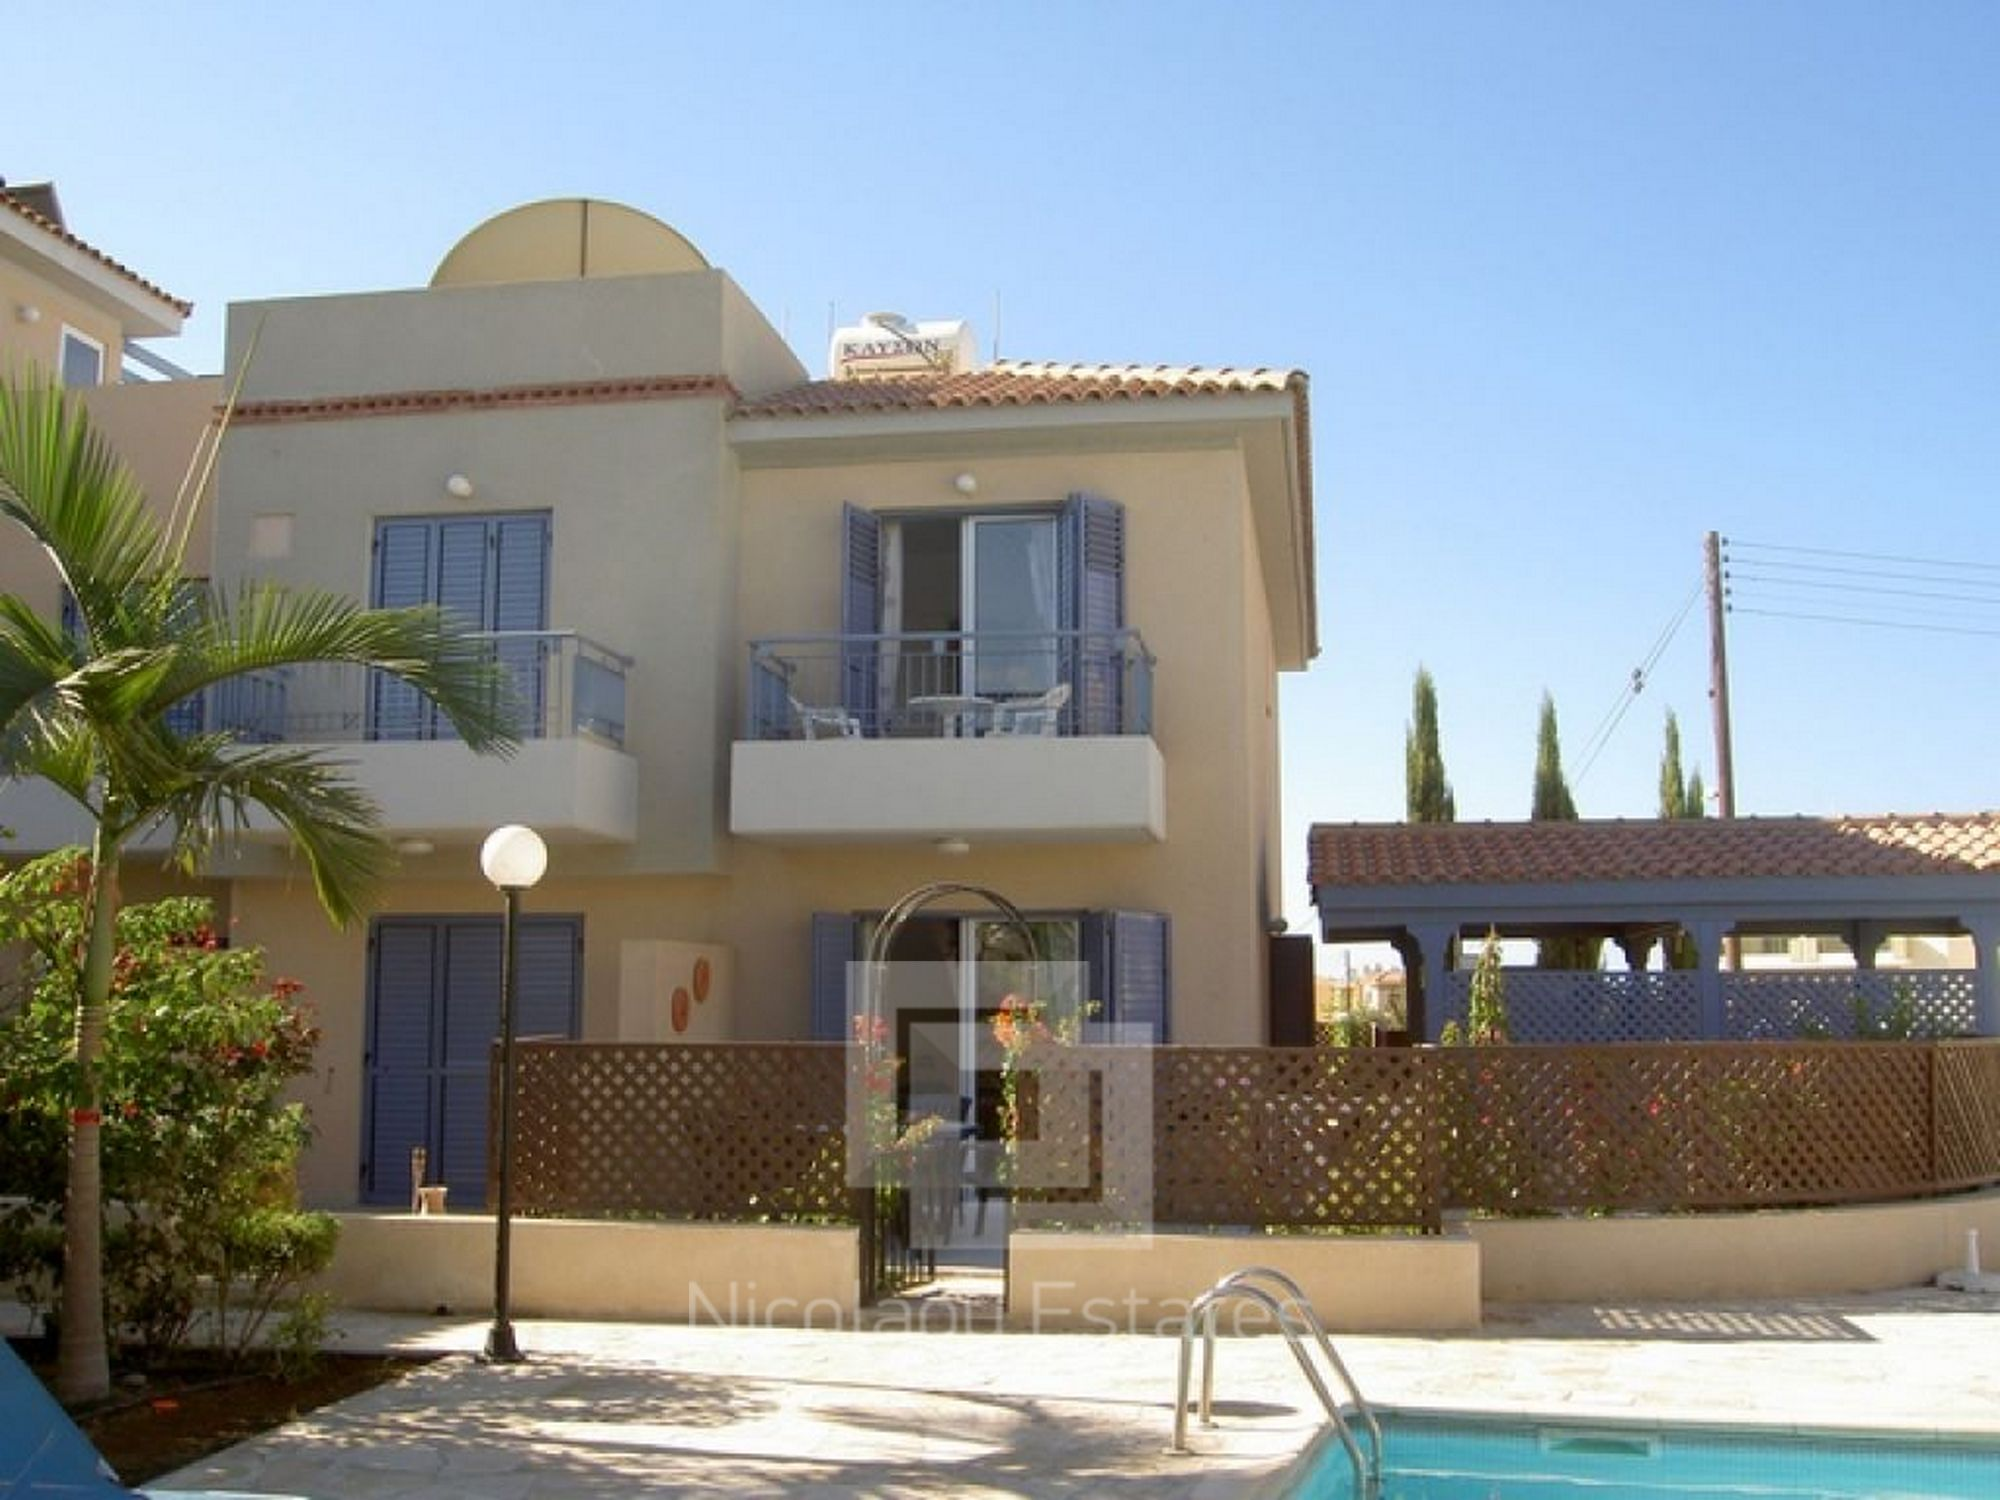 For Sale Two Bedroom Townhouse For Sale In Kato Paphos Eur